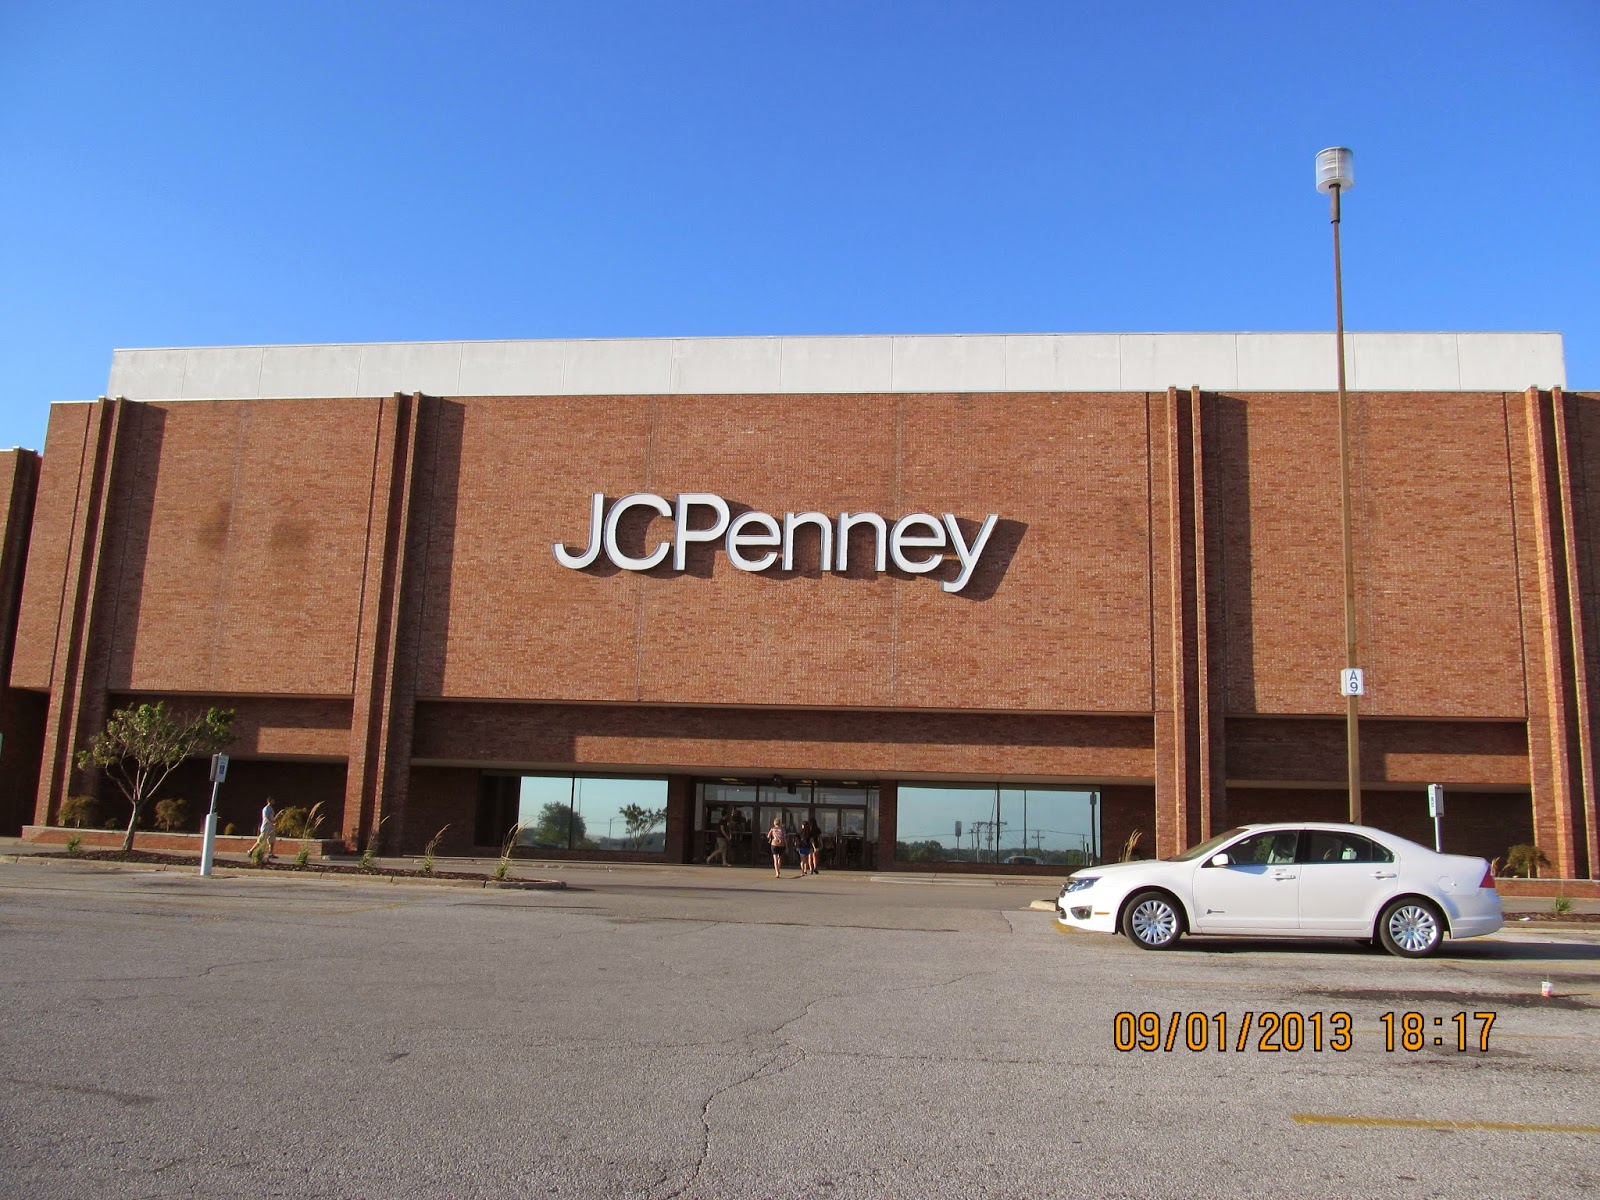 Trip to the Mall: North Park Mall- (Davenport, IL)